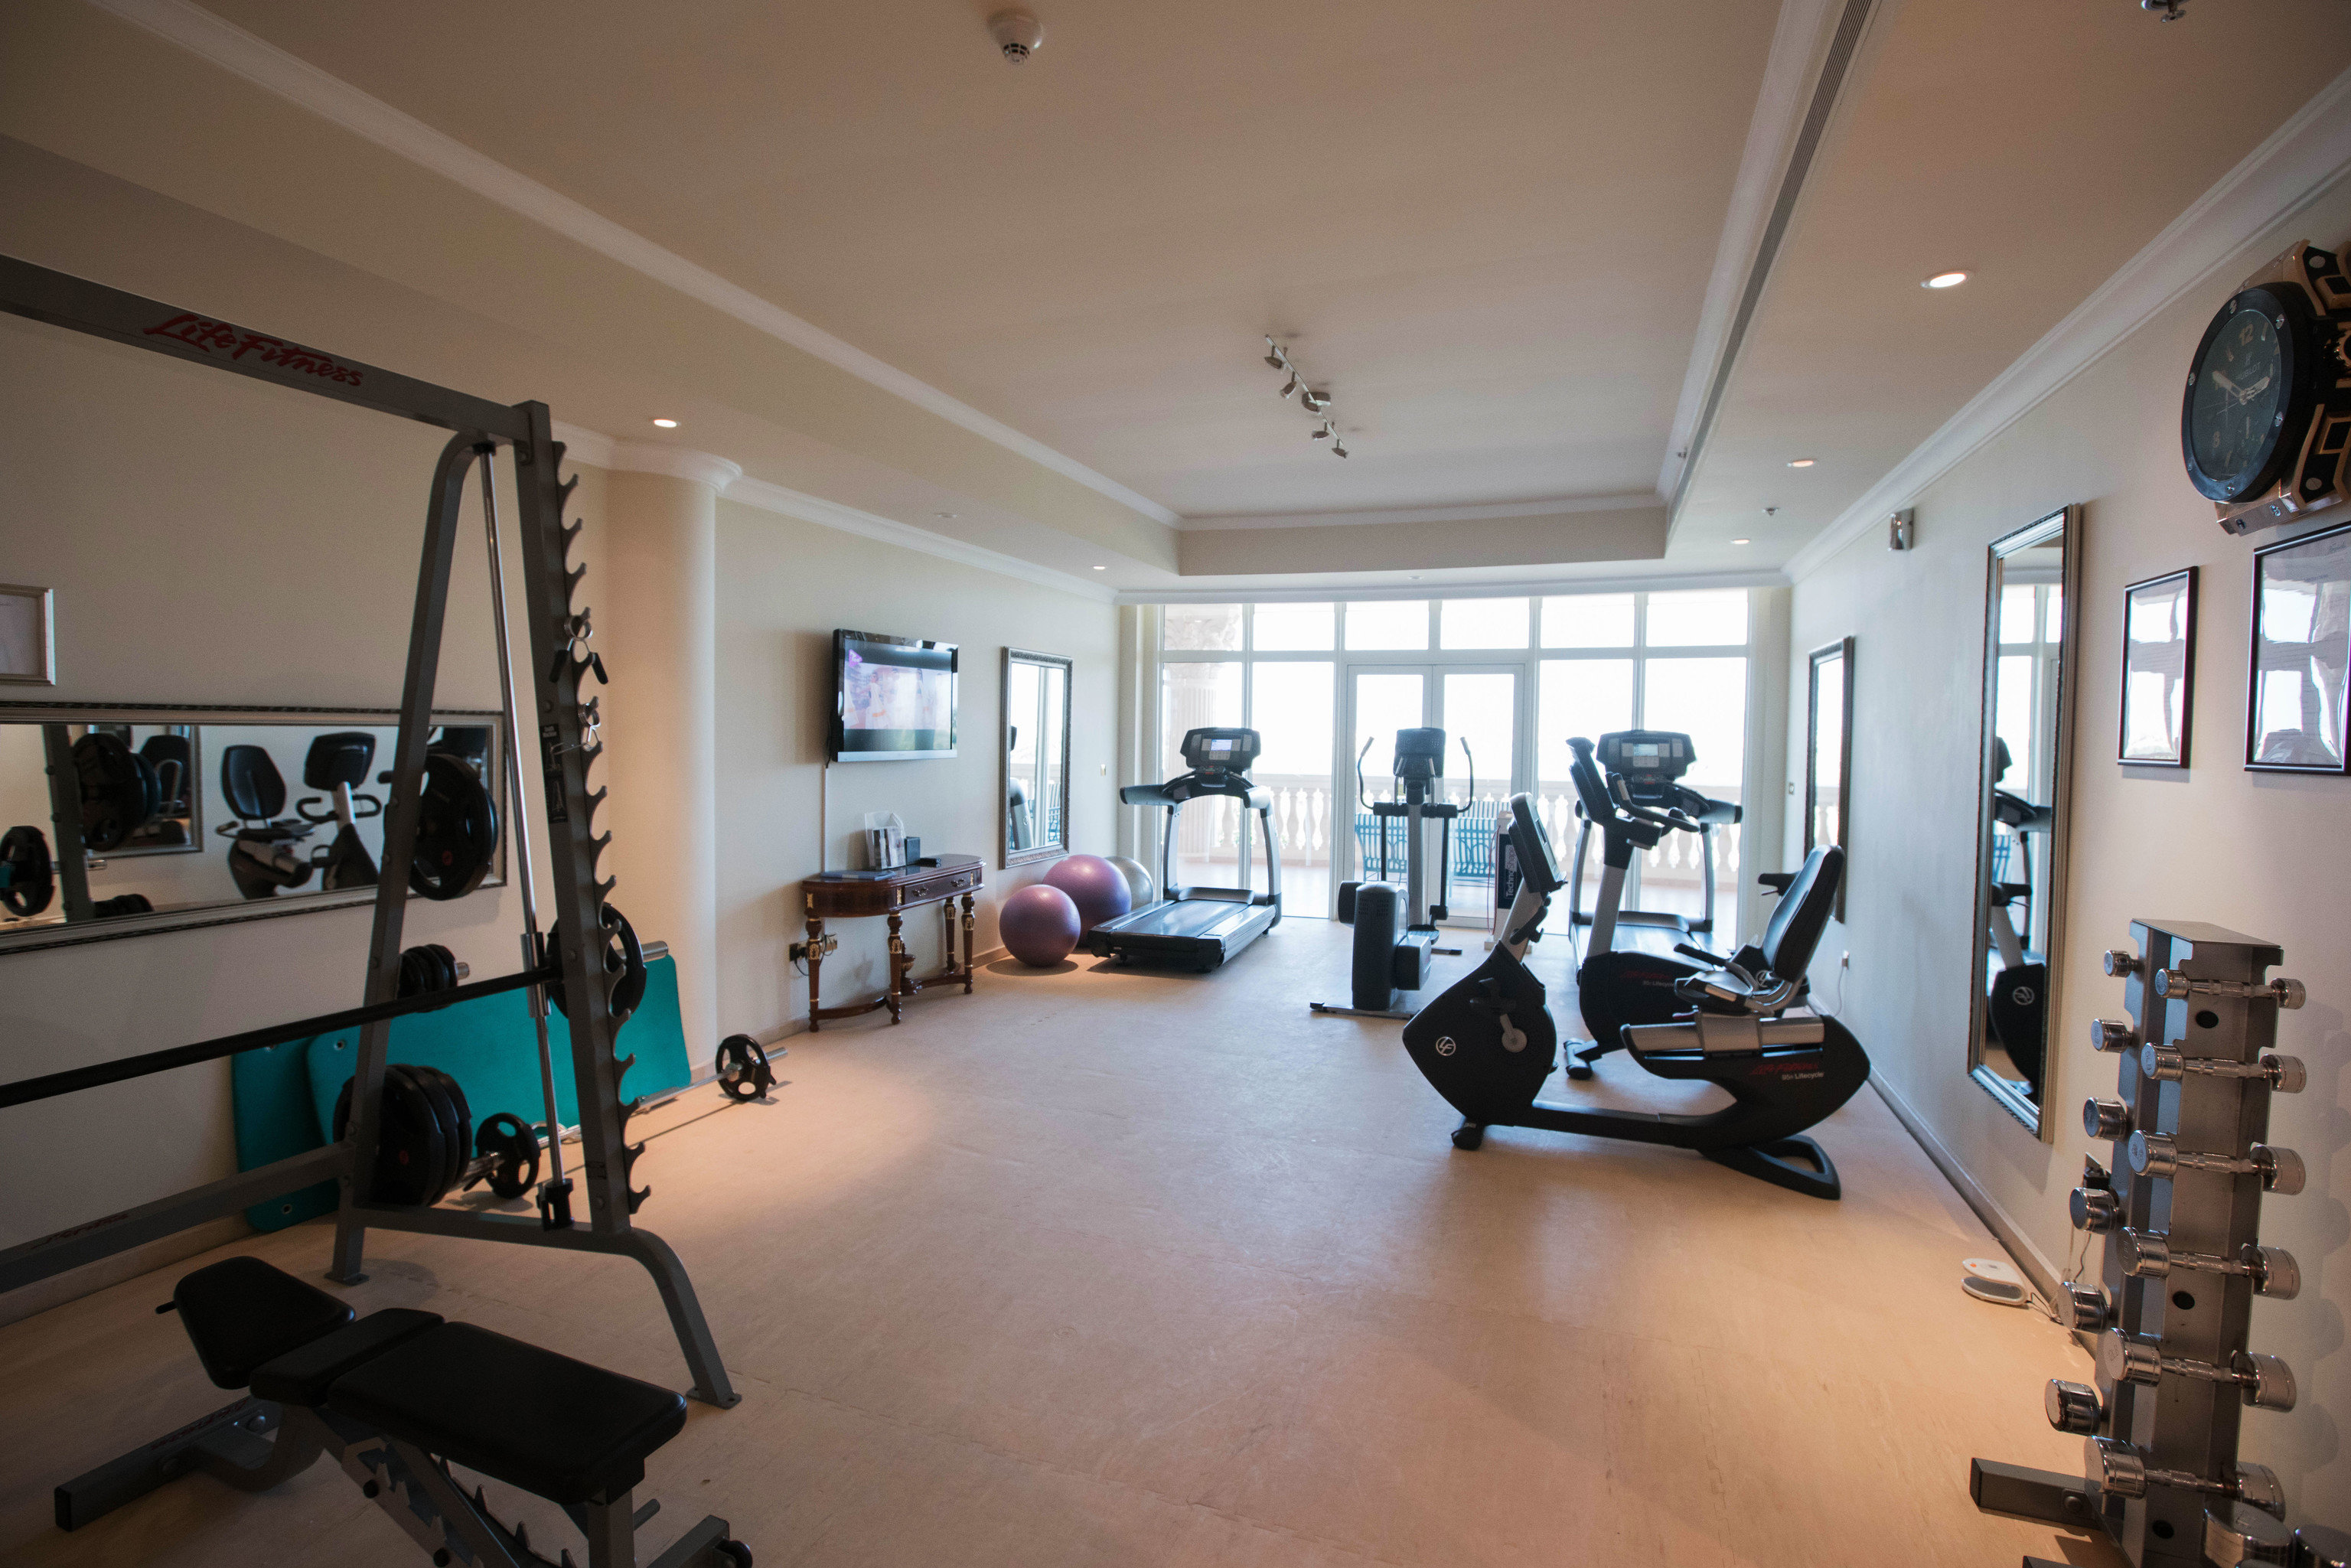 structure property sport venue condominium home gym physical fitness